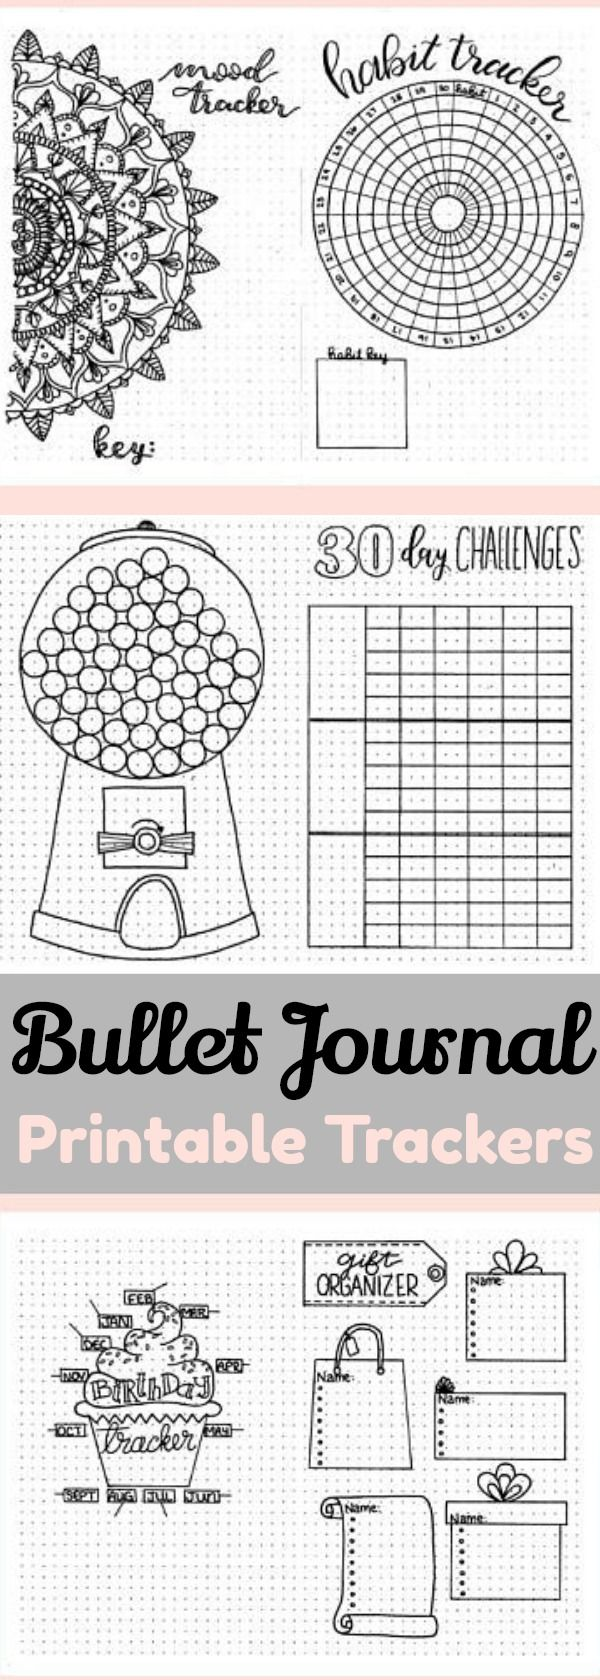 Creative Tracking: Printable Bullet Journal Trackers ~ Mandala mood tracker, circular habit tracker, 30 day challenges tracker, gumball machine tracker, birthday tracker, gift ideas list ~ bujo printable trackers, planner inserts, bullet journal printable inserts, instant download #affiliate #bulletjournalcollection #bujotrackers #plannerprintable